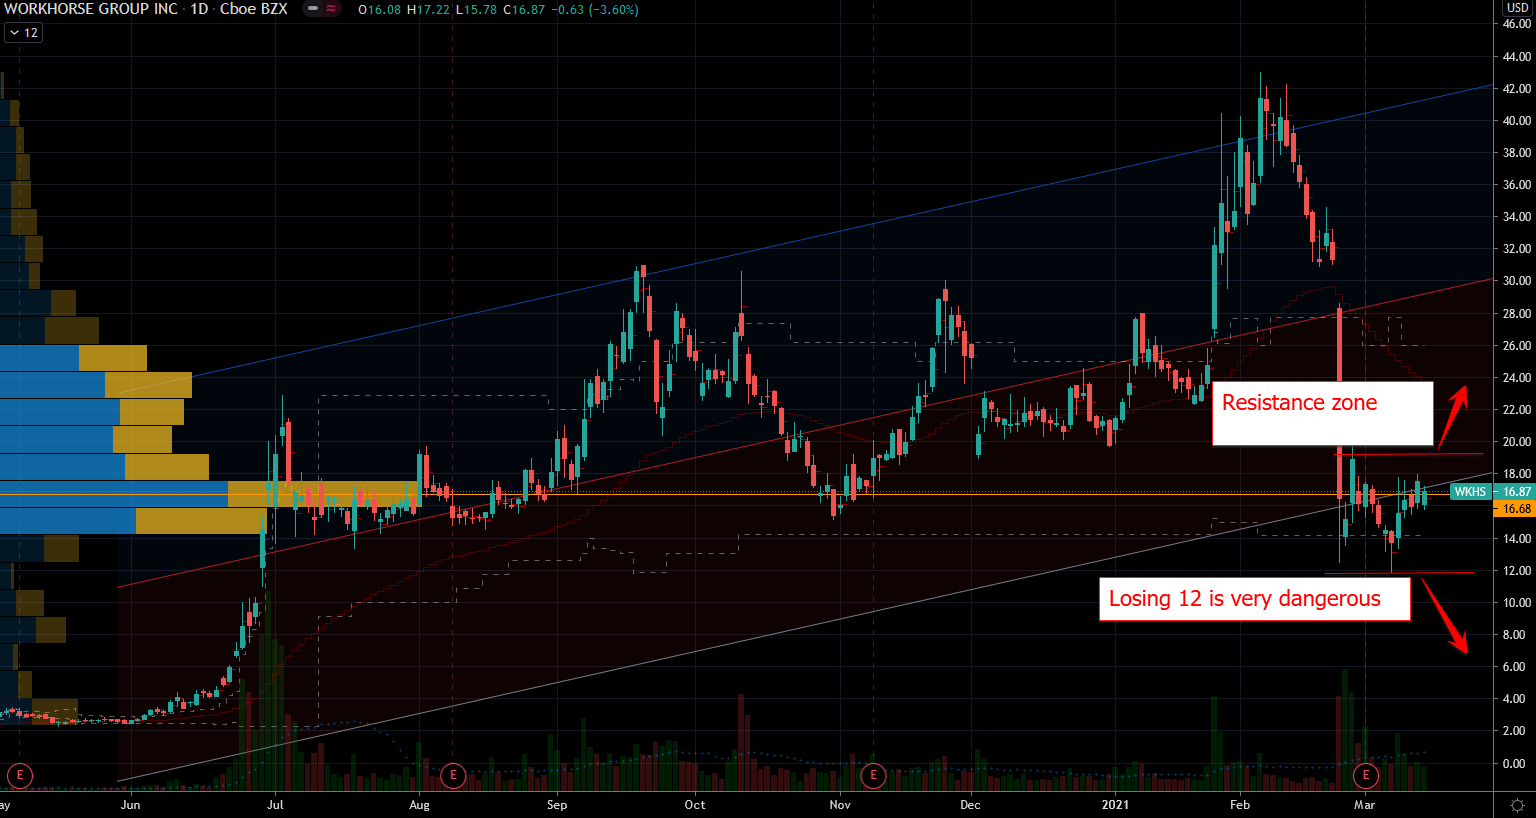 Workhorse (WKHS) Stock Chart Showing Support Zone